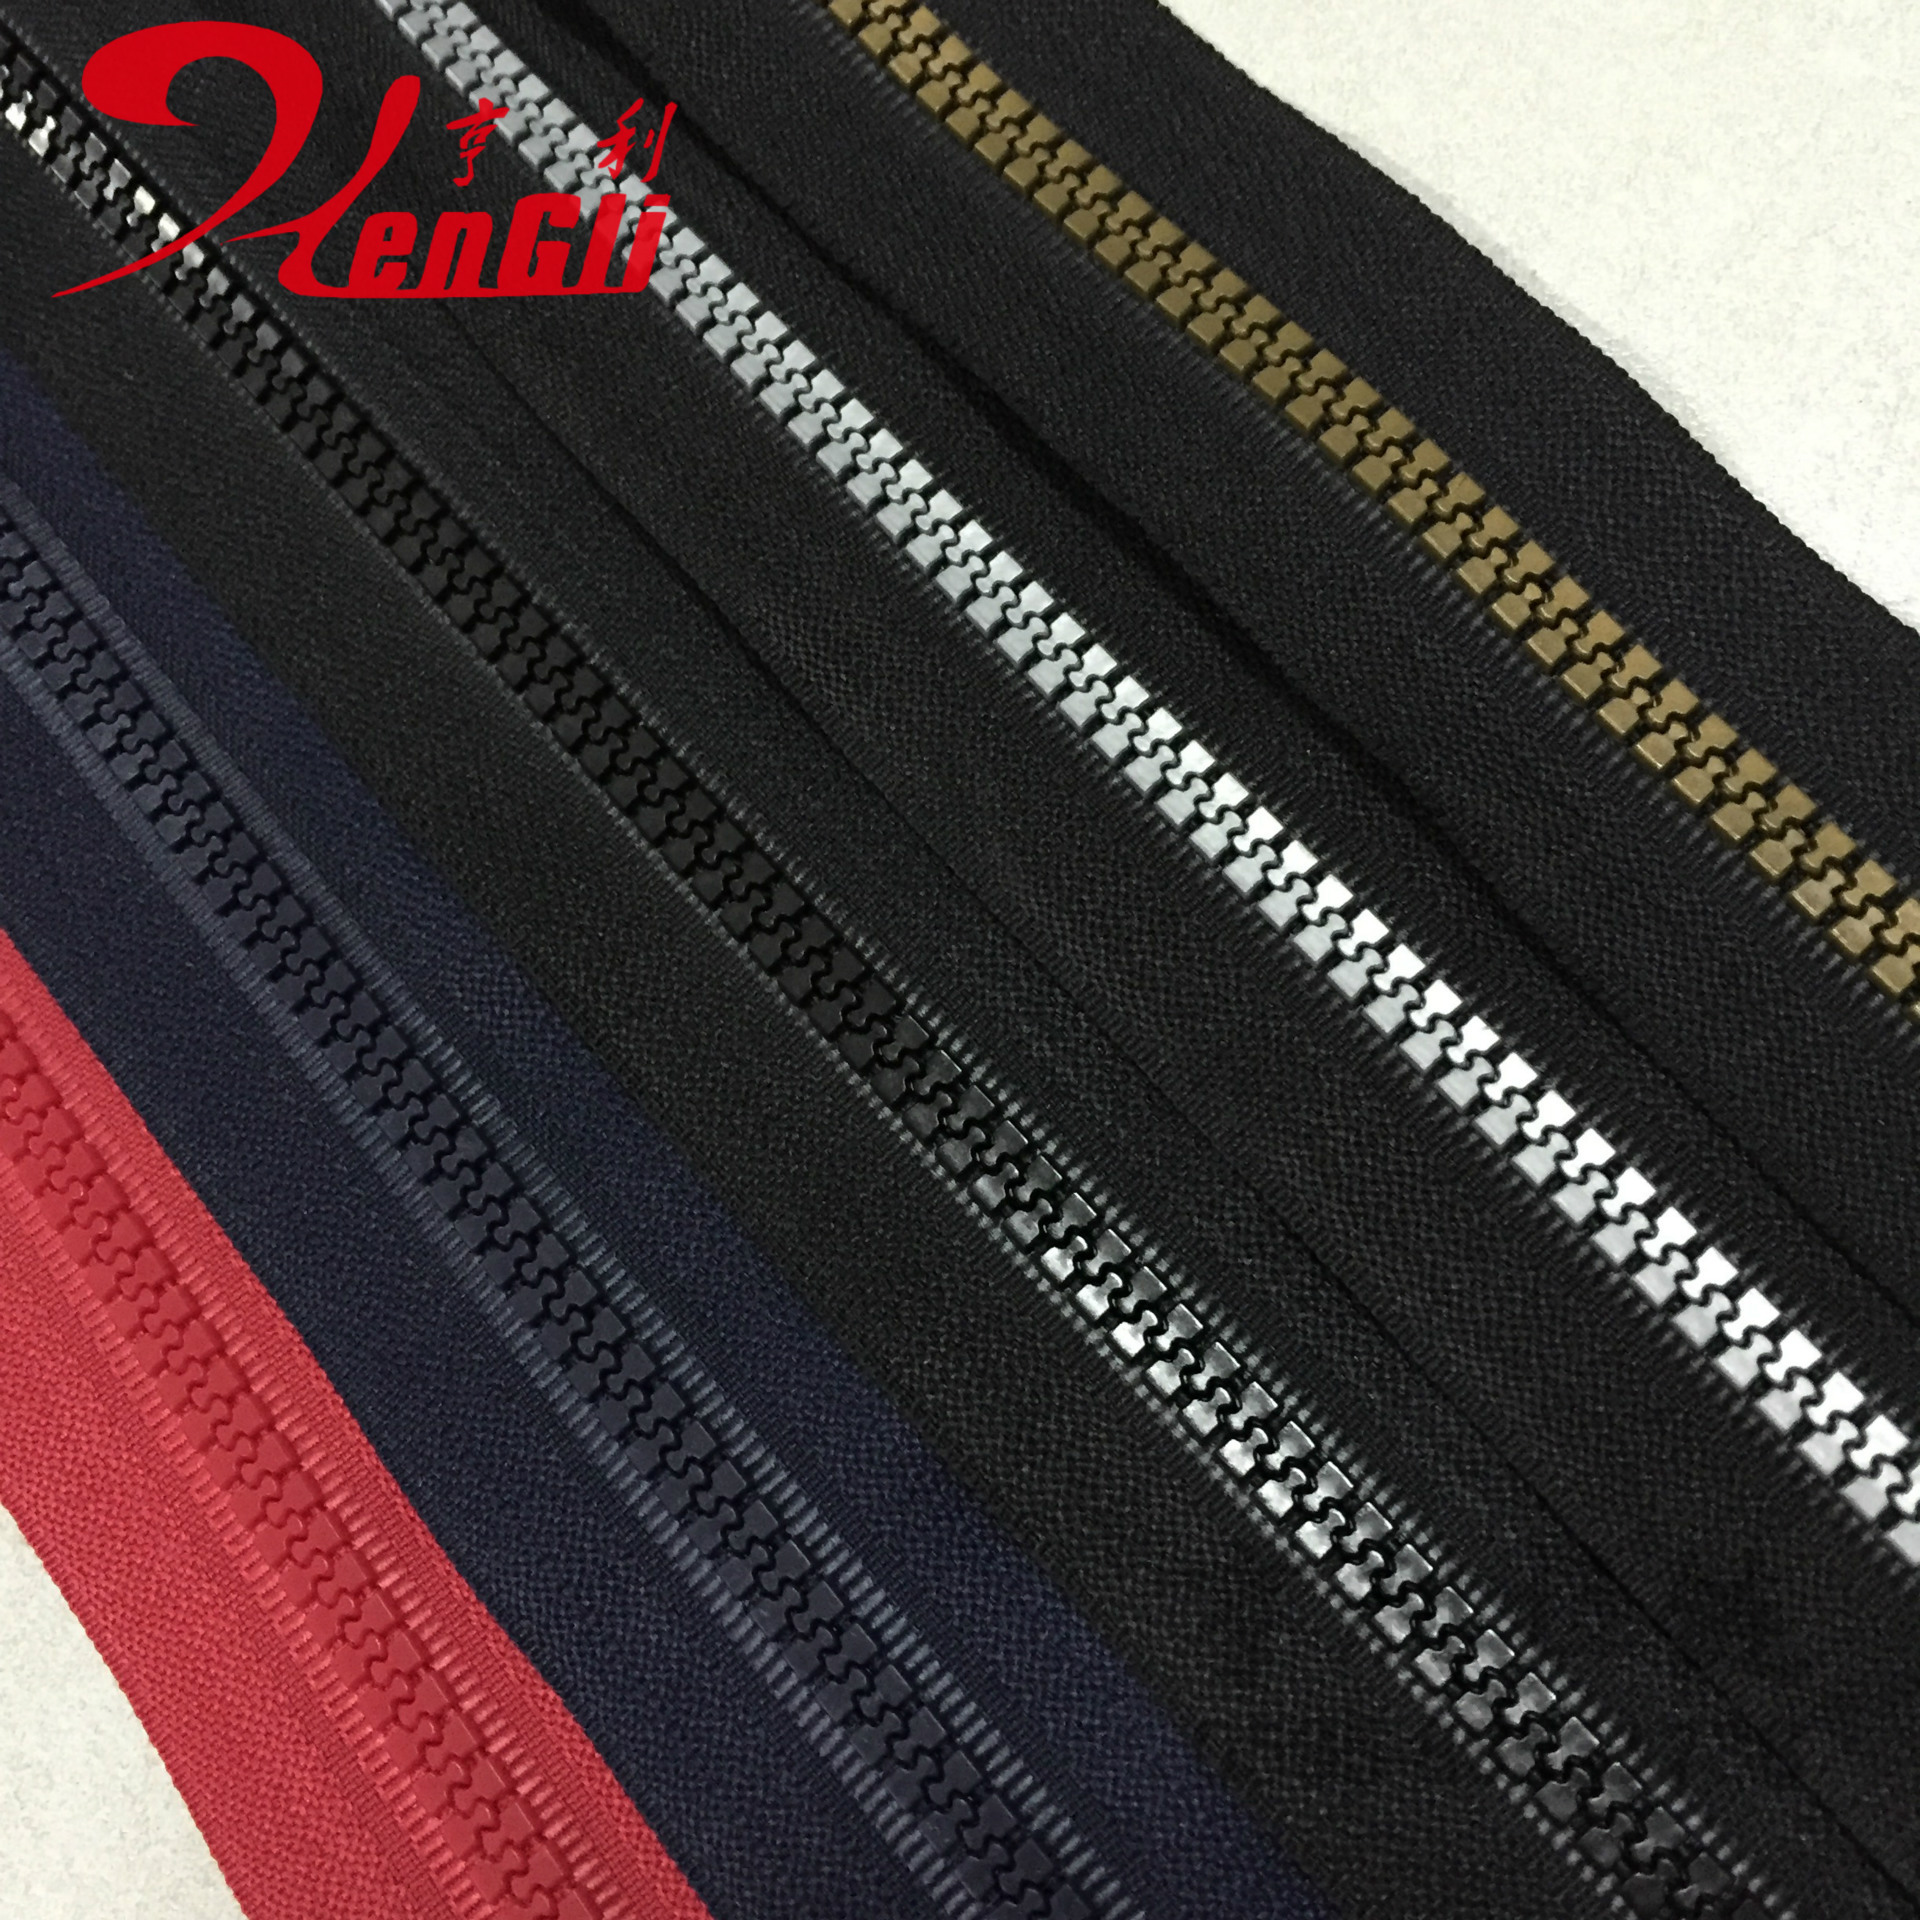 Dây kéo nhựa   Resin zipper zipper factory Yiwu wholesale Introducing popular favorite clothing manu